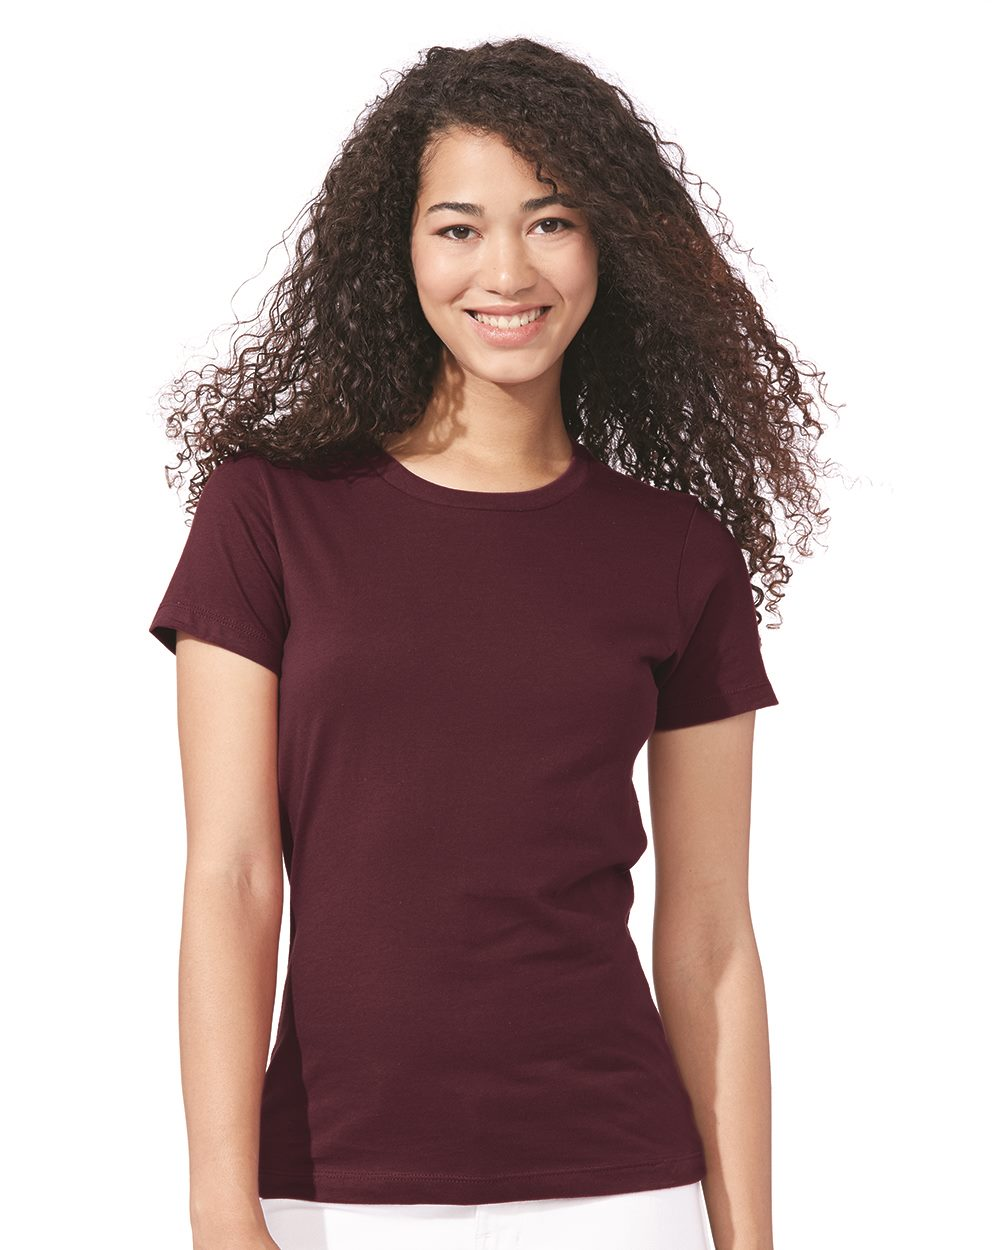 Next Level Women's The Boyfriend Tee 3900 Starting $4.00 Blank